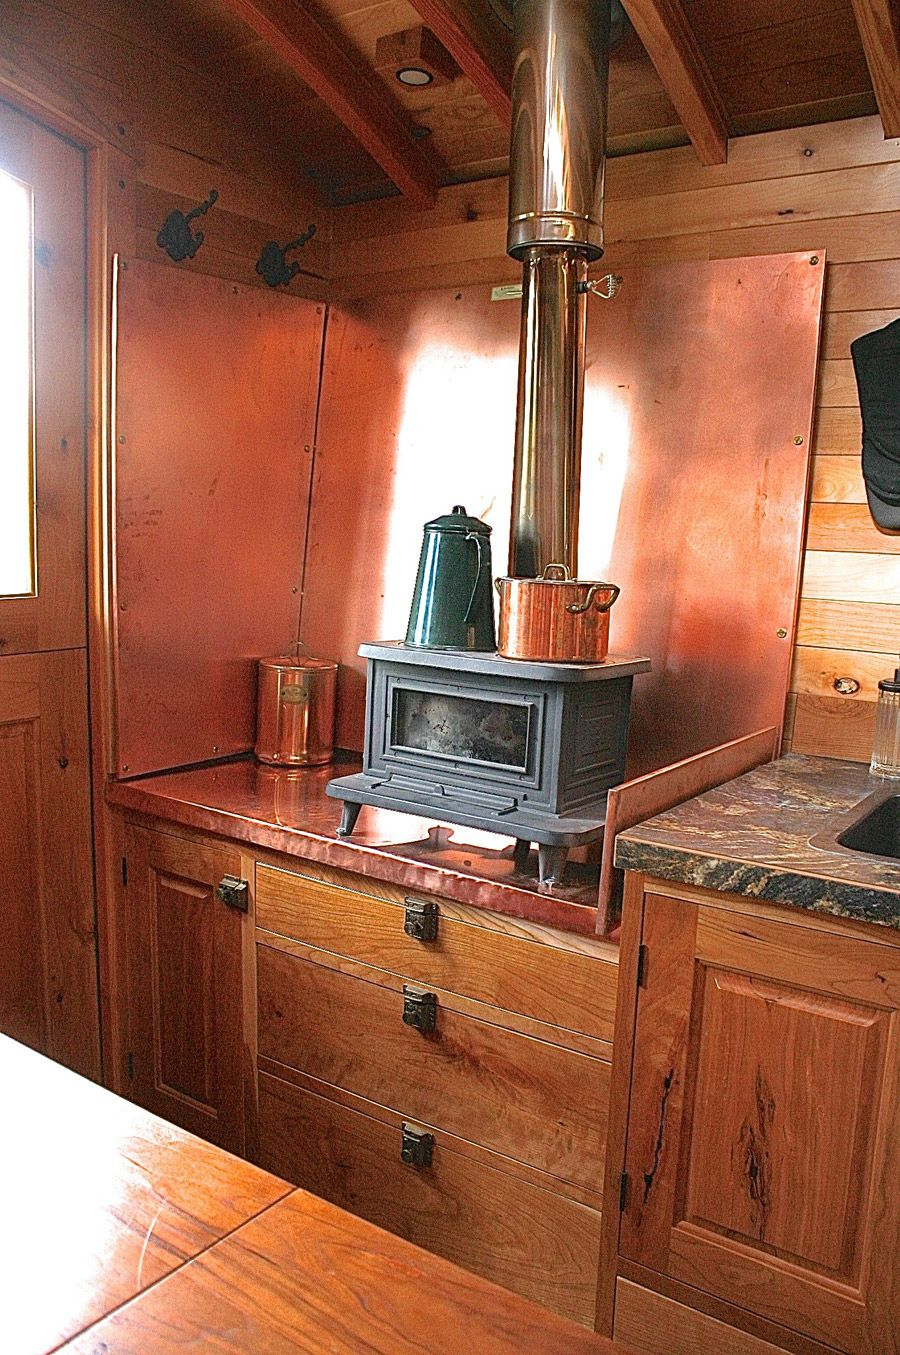 17 Best images about Stove Camper on Pinterest Stove Tiny